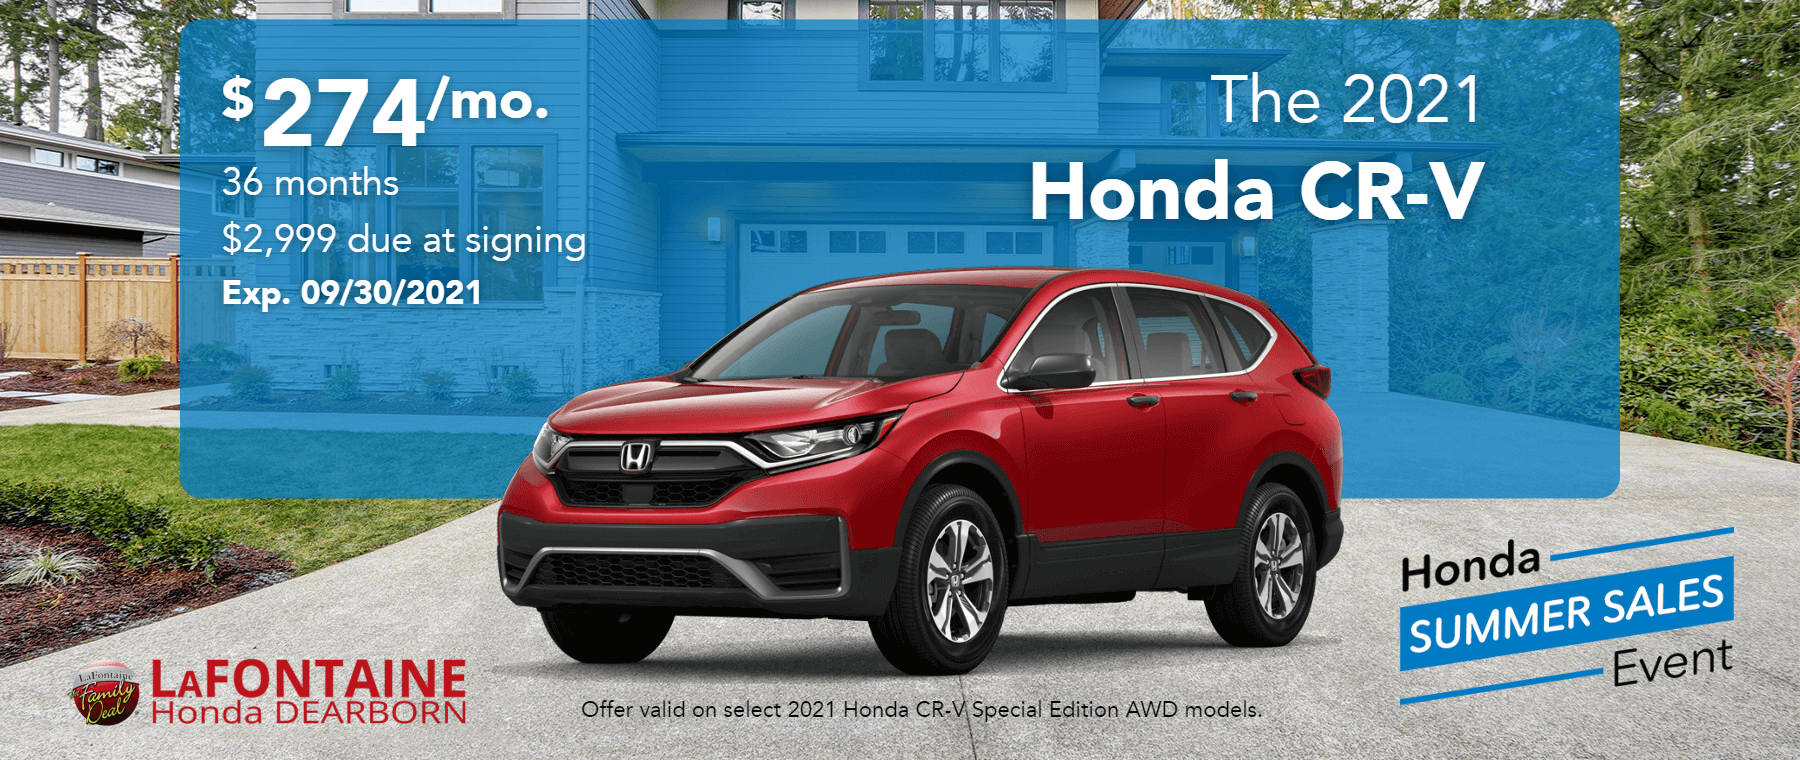 2021_Honda_CR-V_Special Edition AWD_Wed Sep 08 2021 14_31_10 GMT-0400 (Eastern Daylight Time)